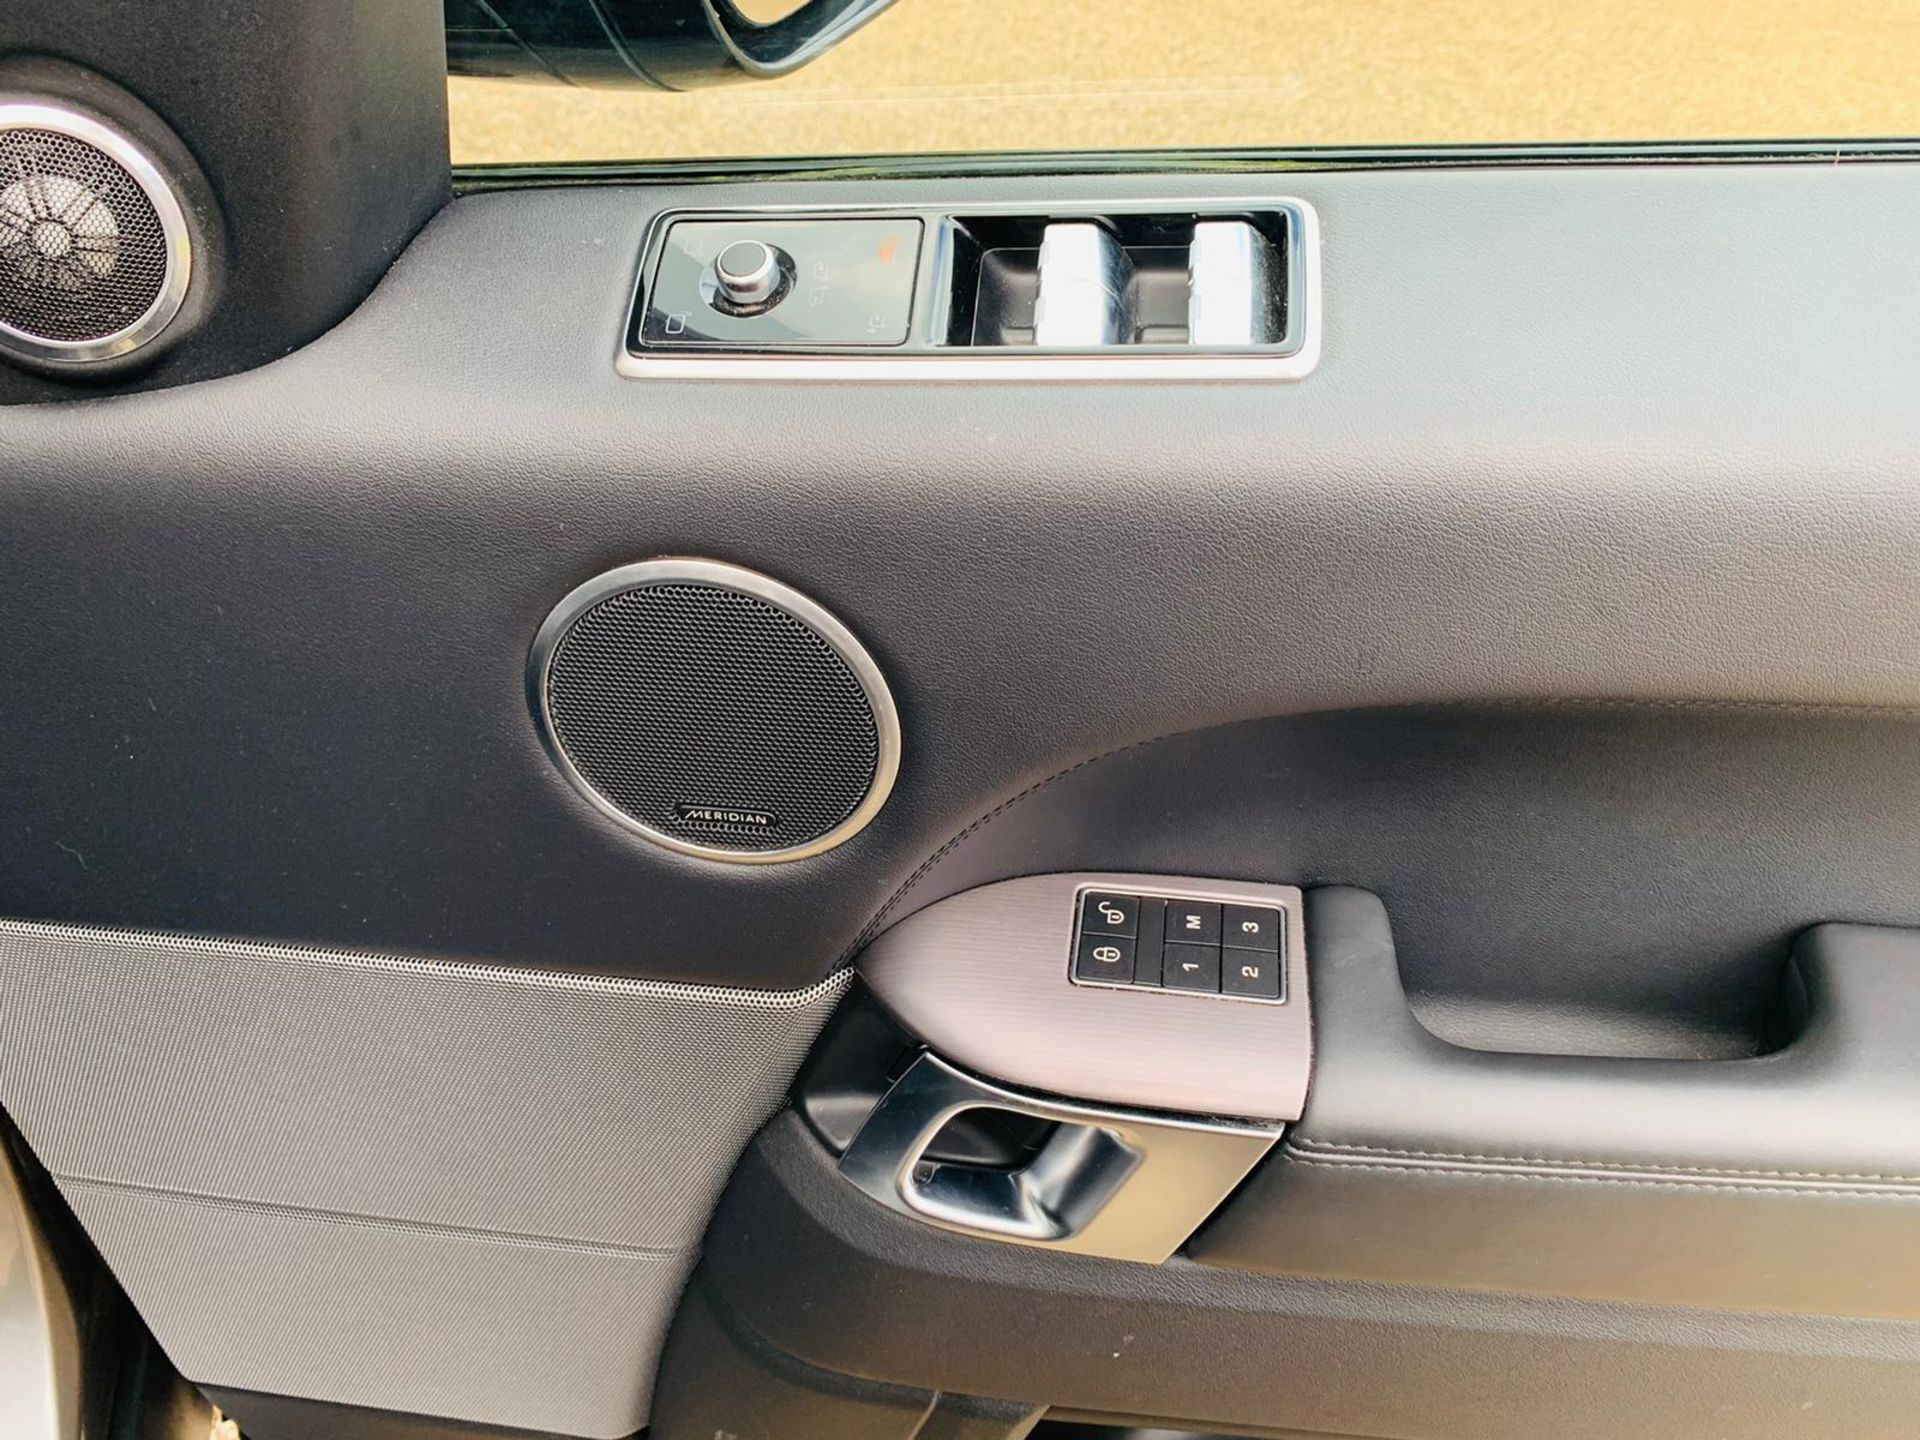 (RESERVE MET) Range Rover Sport 3.0 SDV6 HSE Auto - 2019 - 1 Keeper From New - Virtual Cockpit - - Image 34 of 42